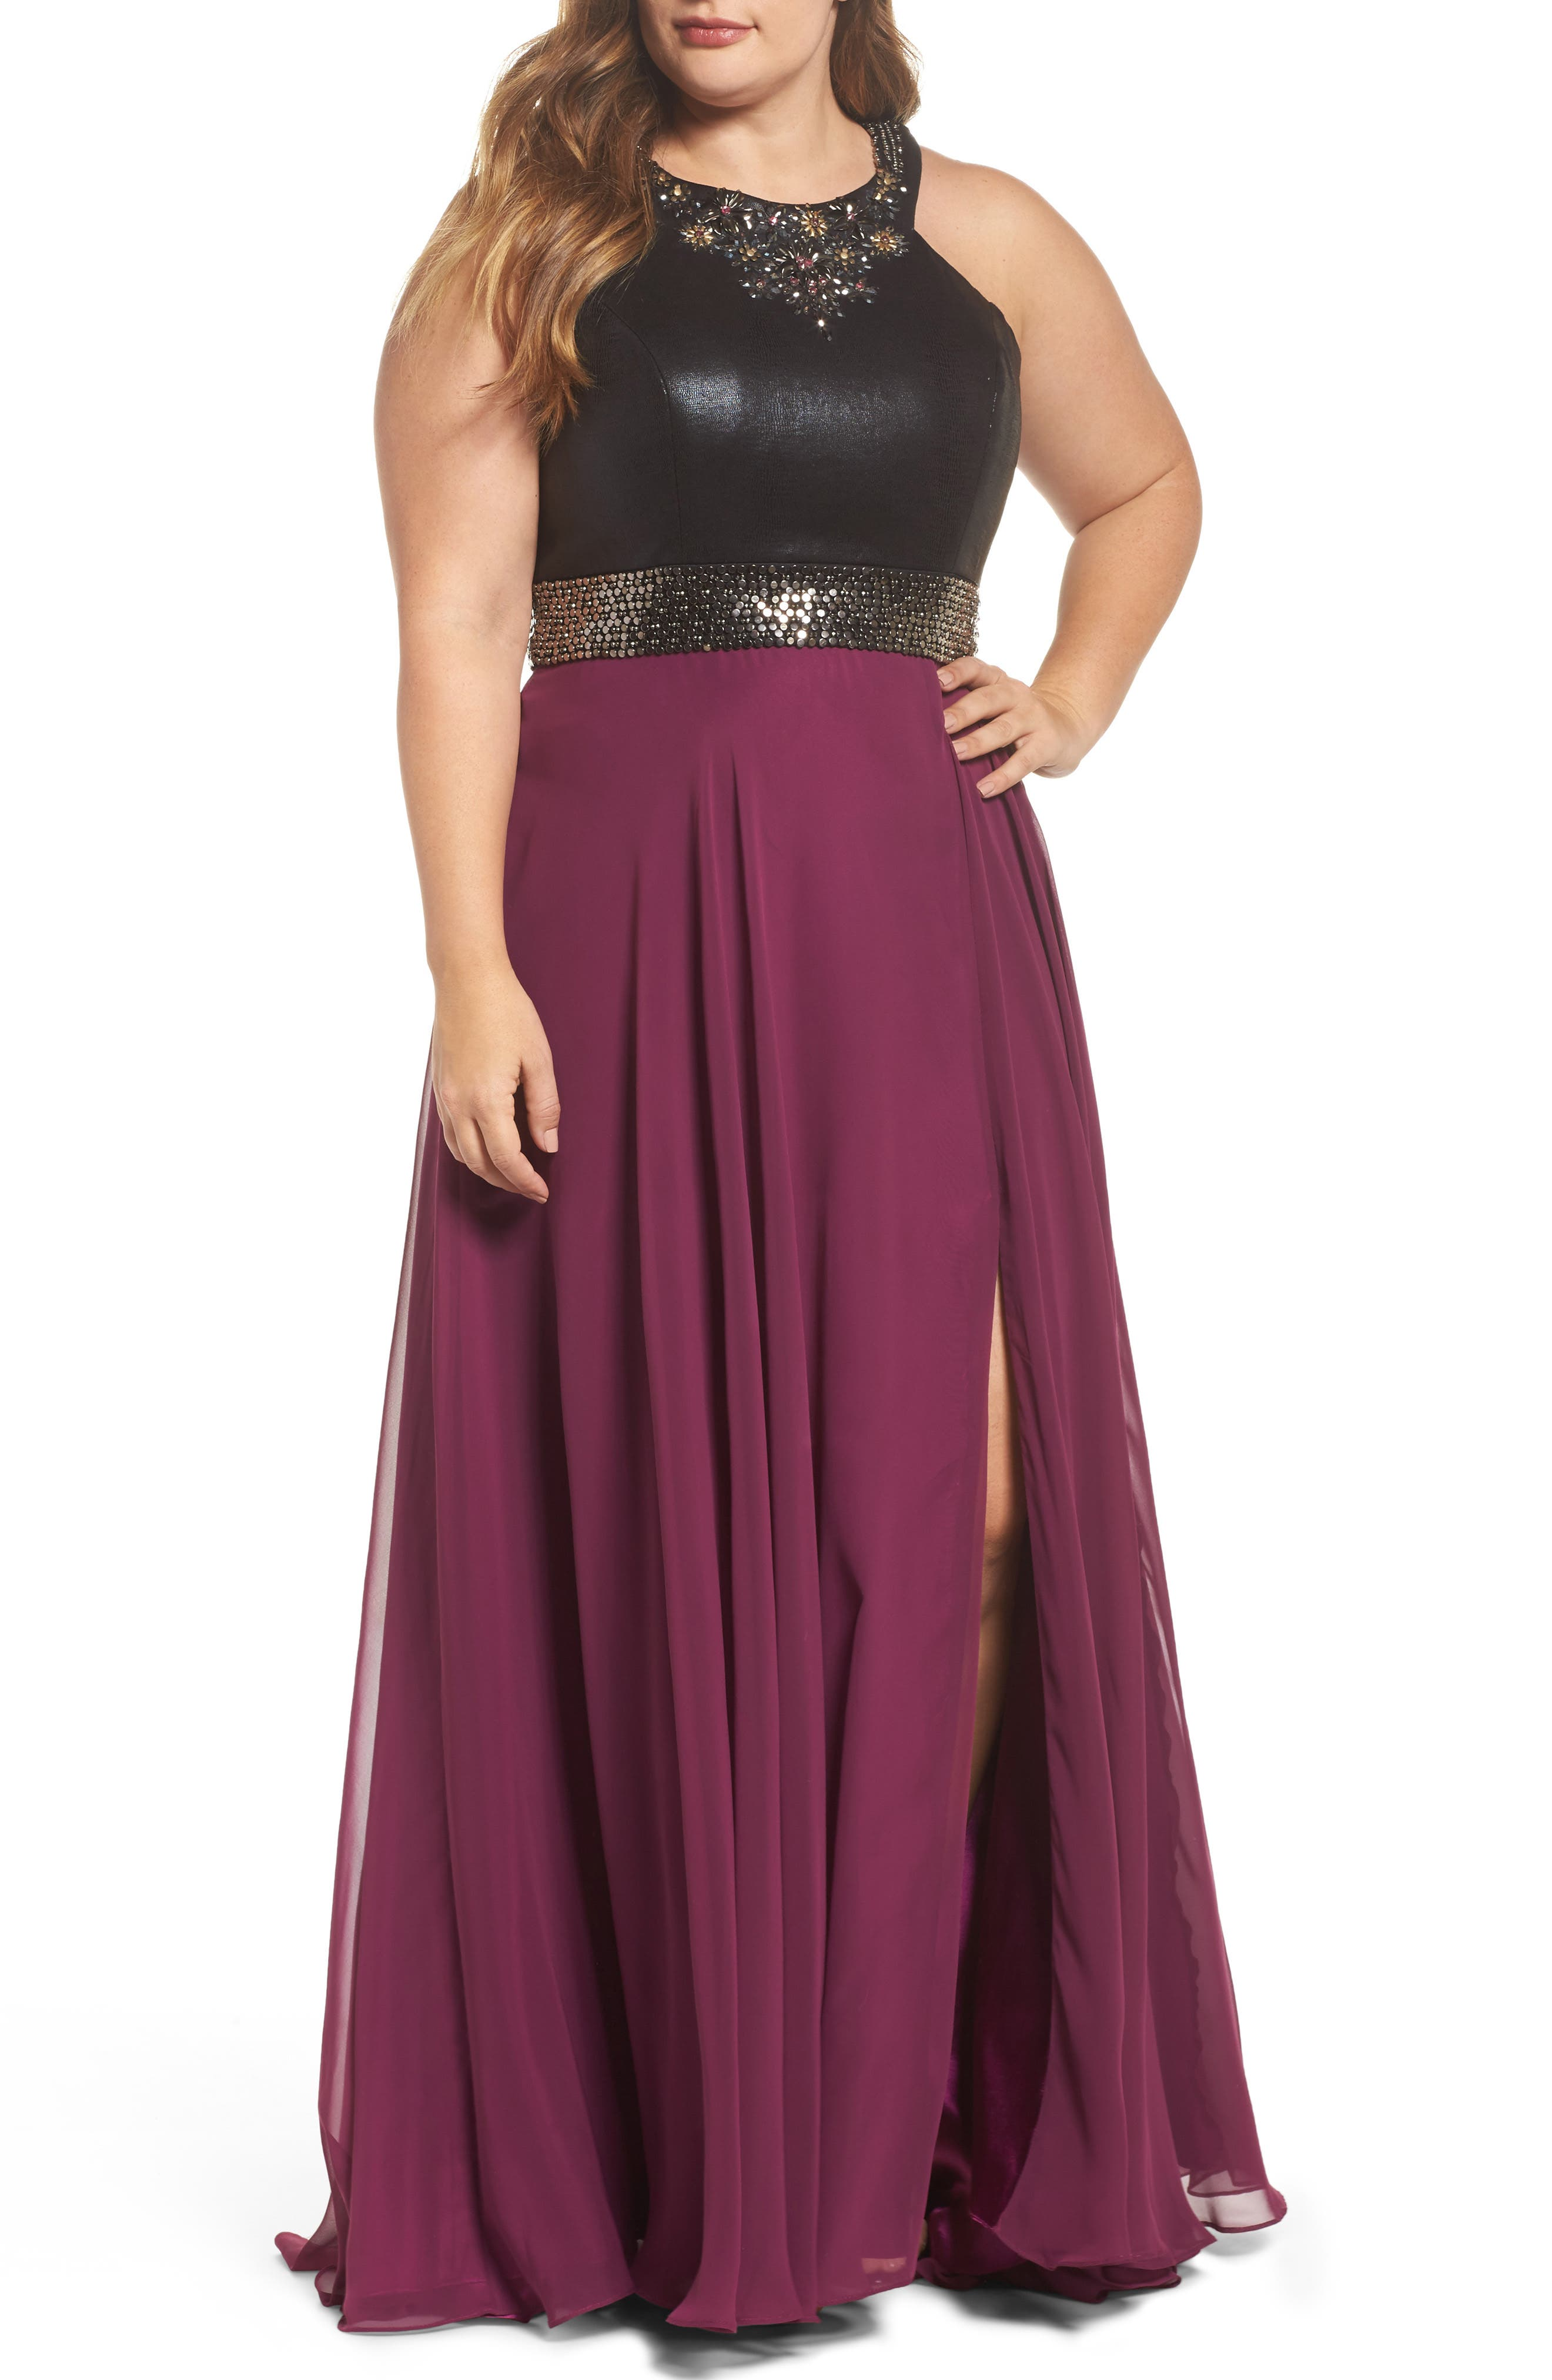 Beaded High Neck Gown,                             Main thumbnail 1, color,                             Purple/ Black